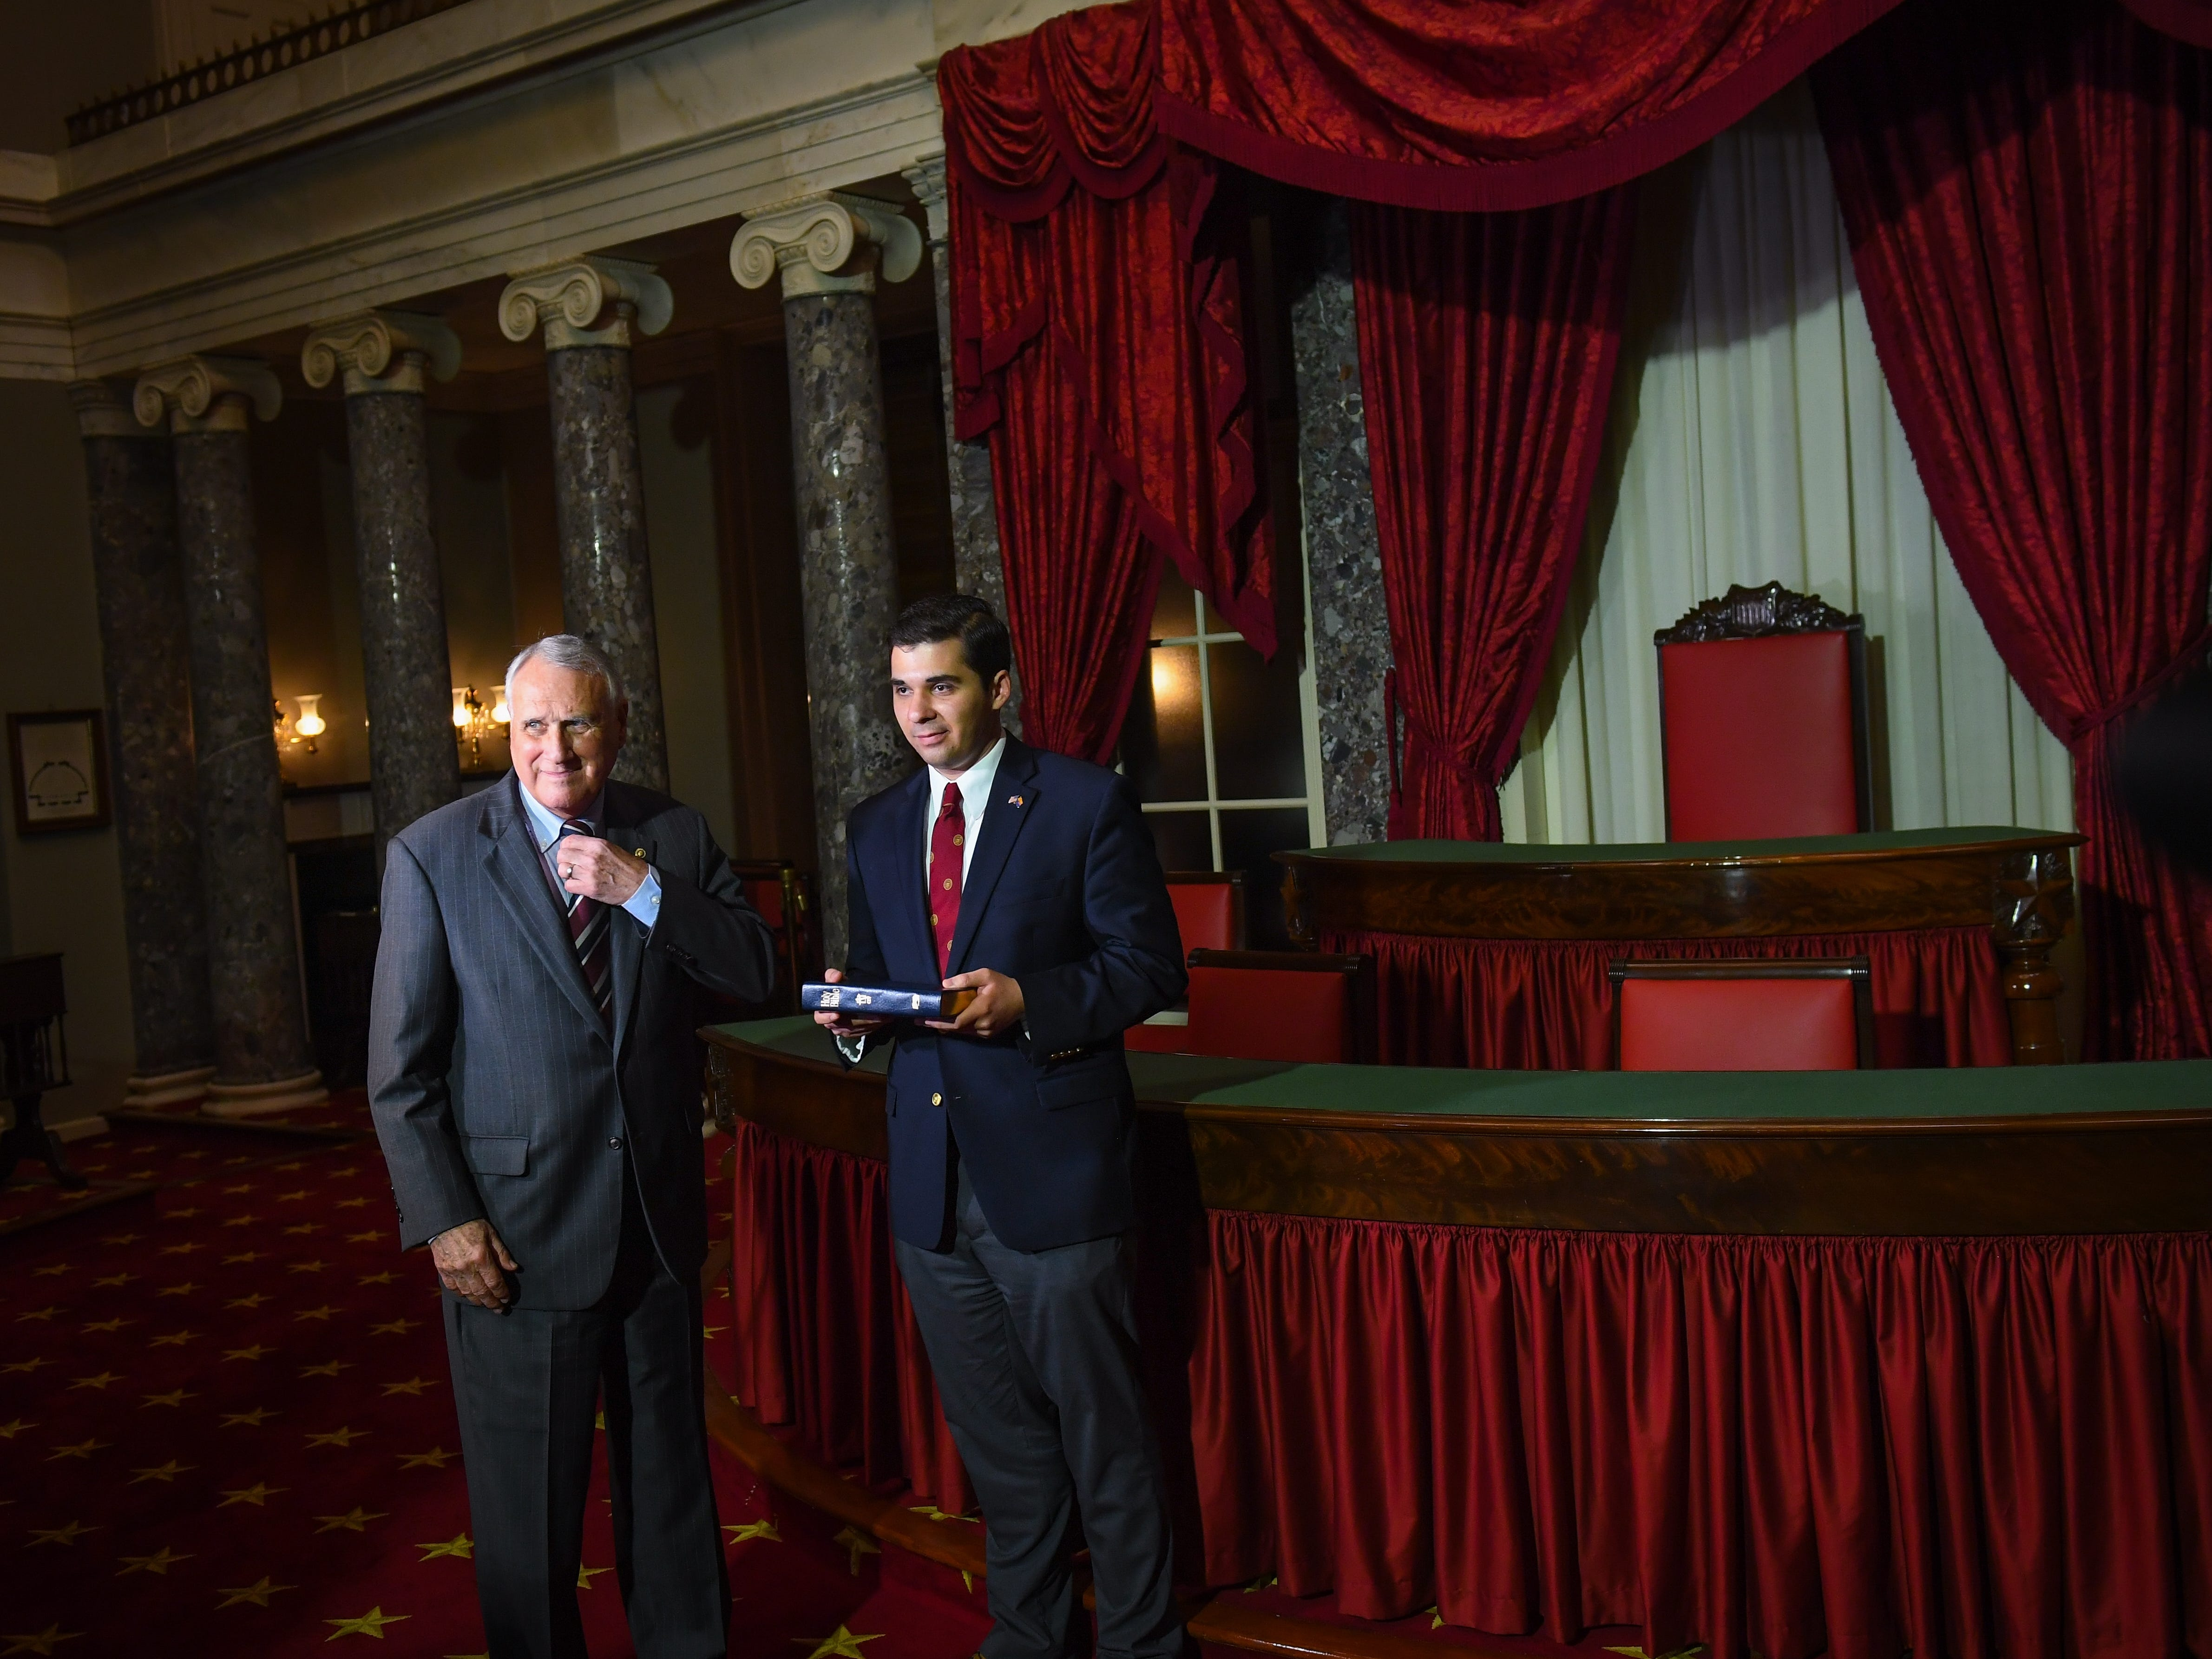 Jon Kyl waiting to be sworn-in by Vice President Mike Pence during a reenactment ceremony on Sept. 5, 2018, in Washington with Kyl's grandson Christoper Gavin.